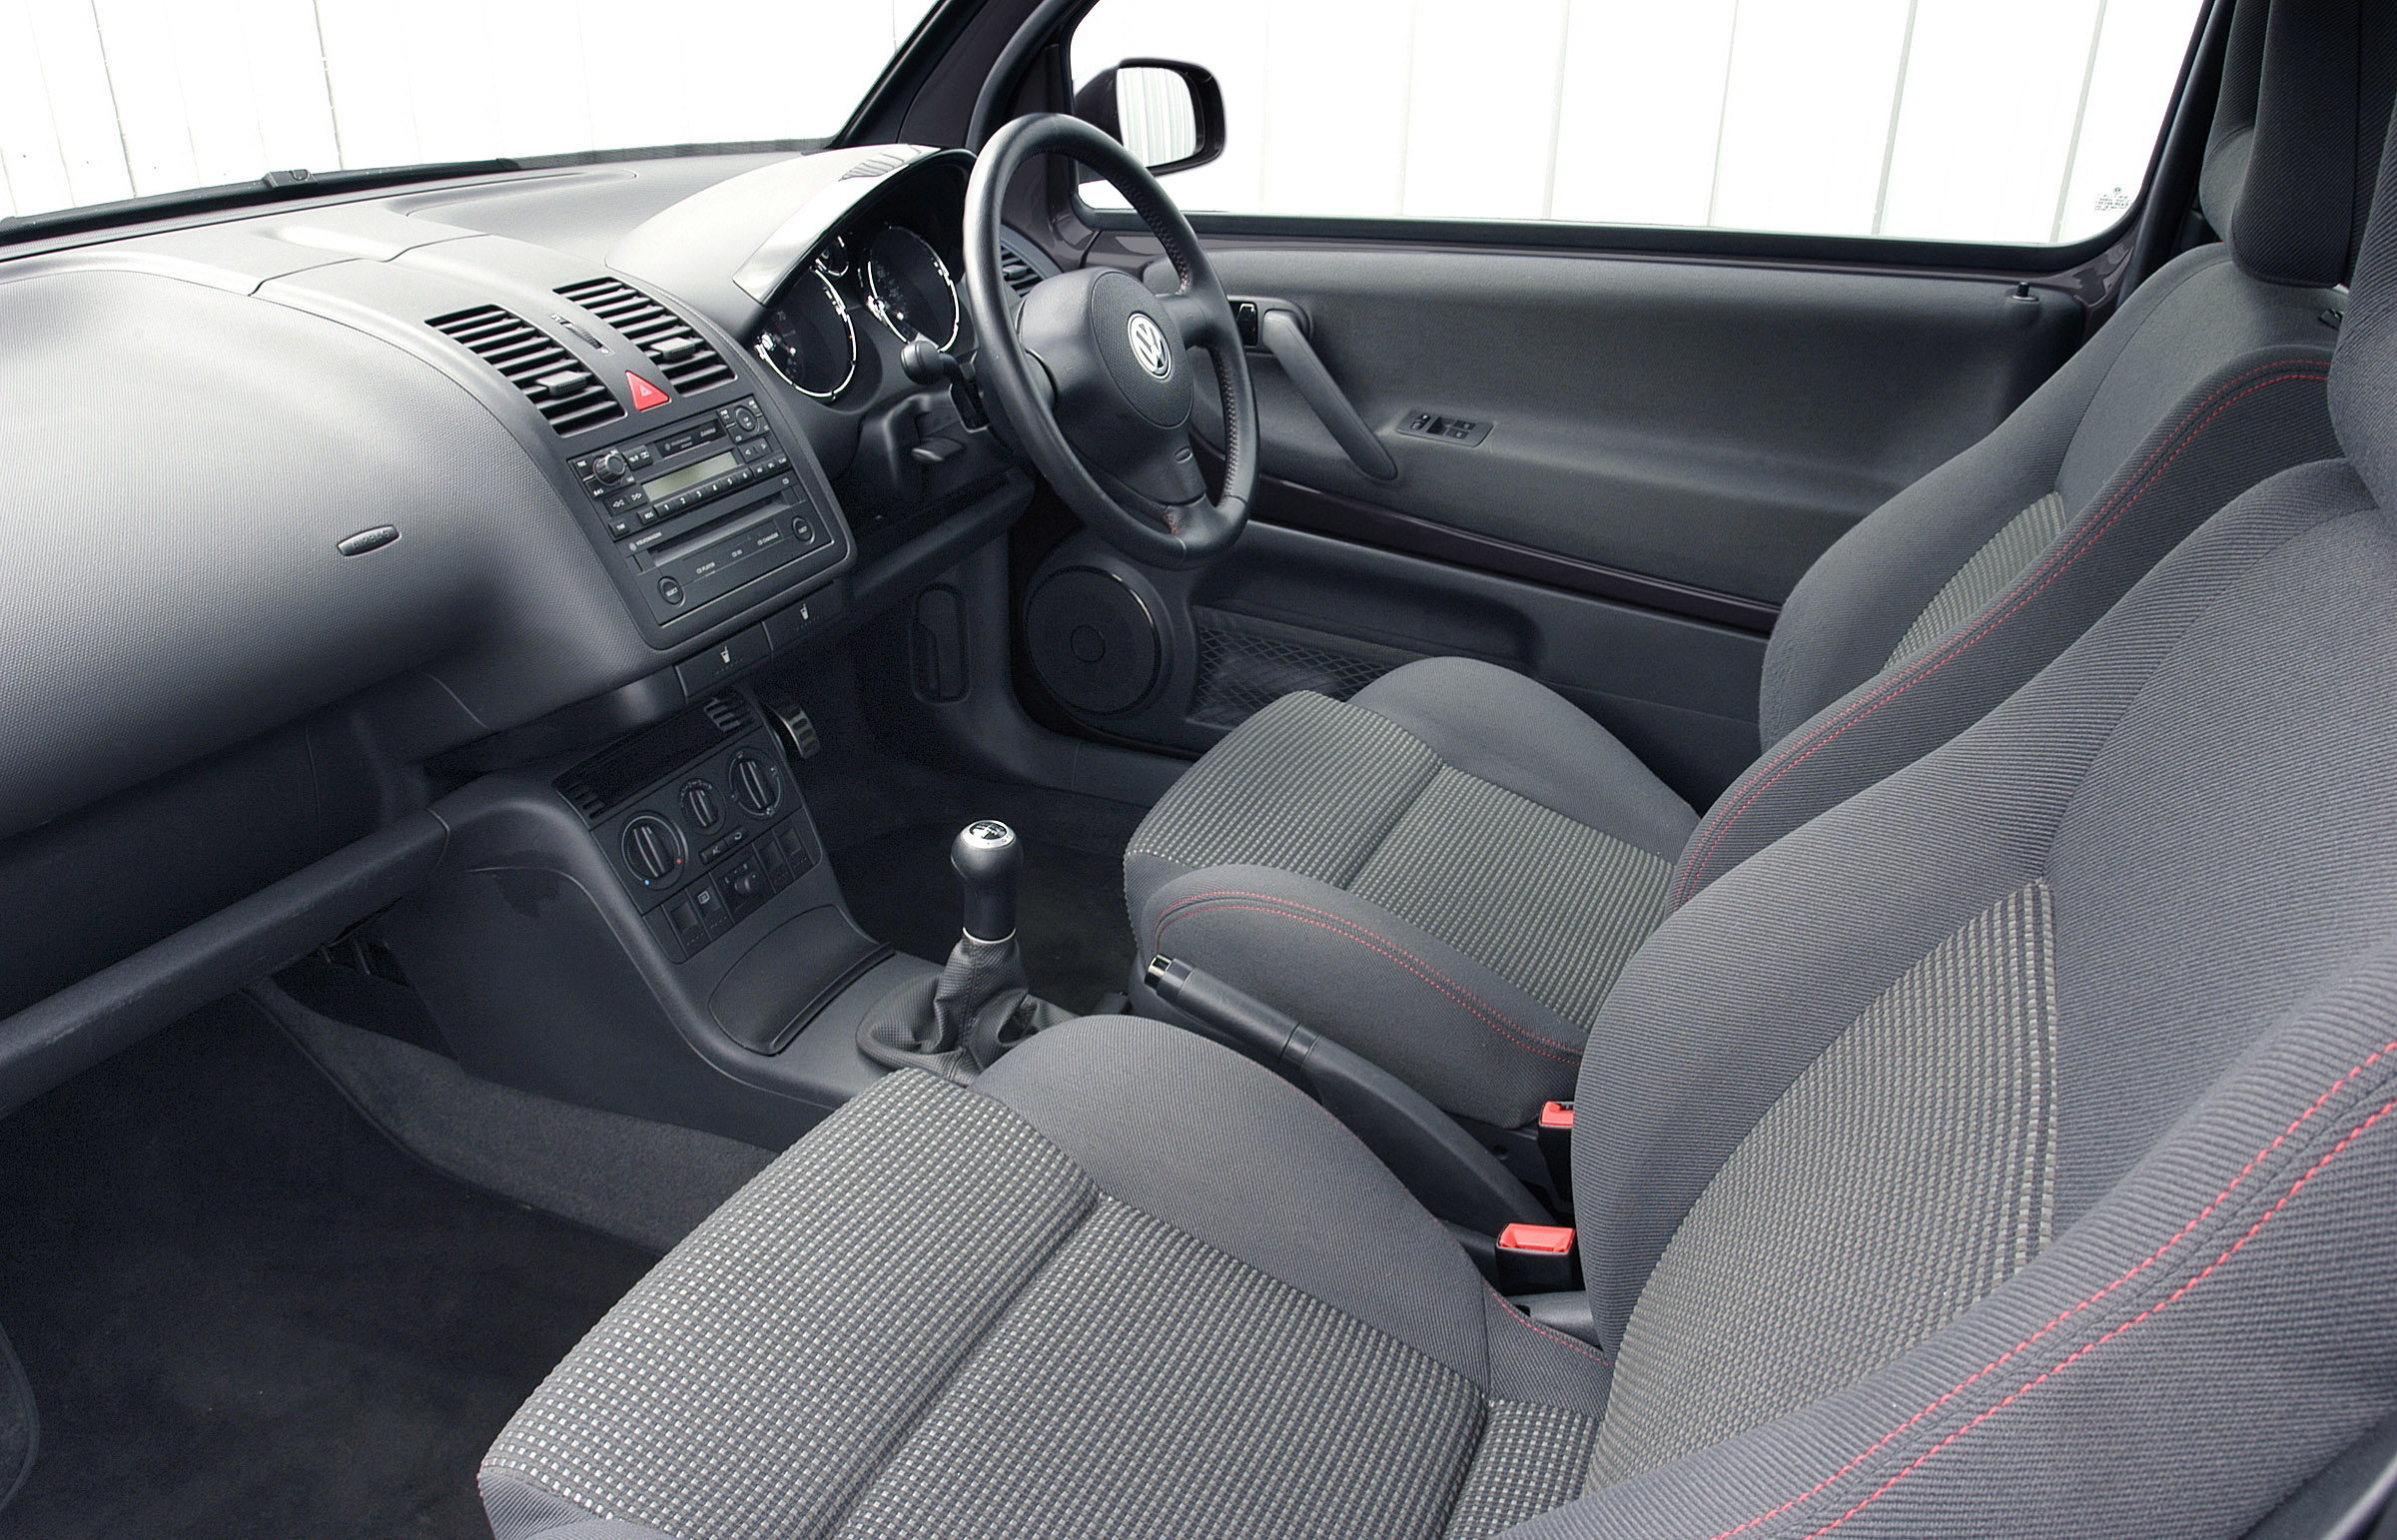 2000 Volkswagen Lupo GTI - Picture 71670